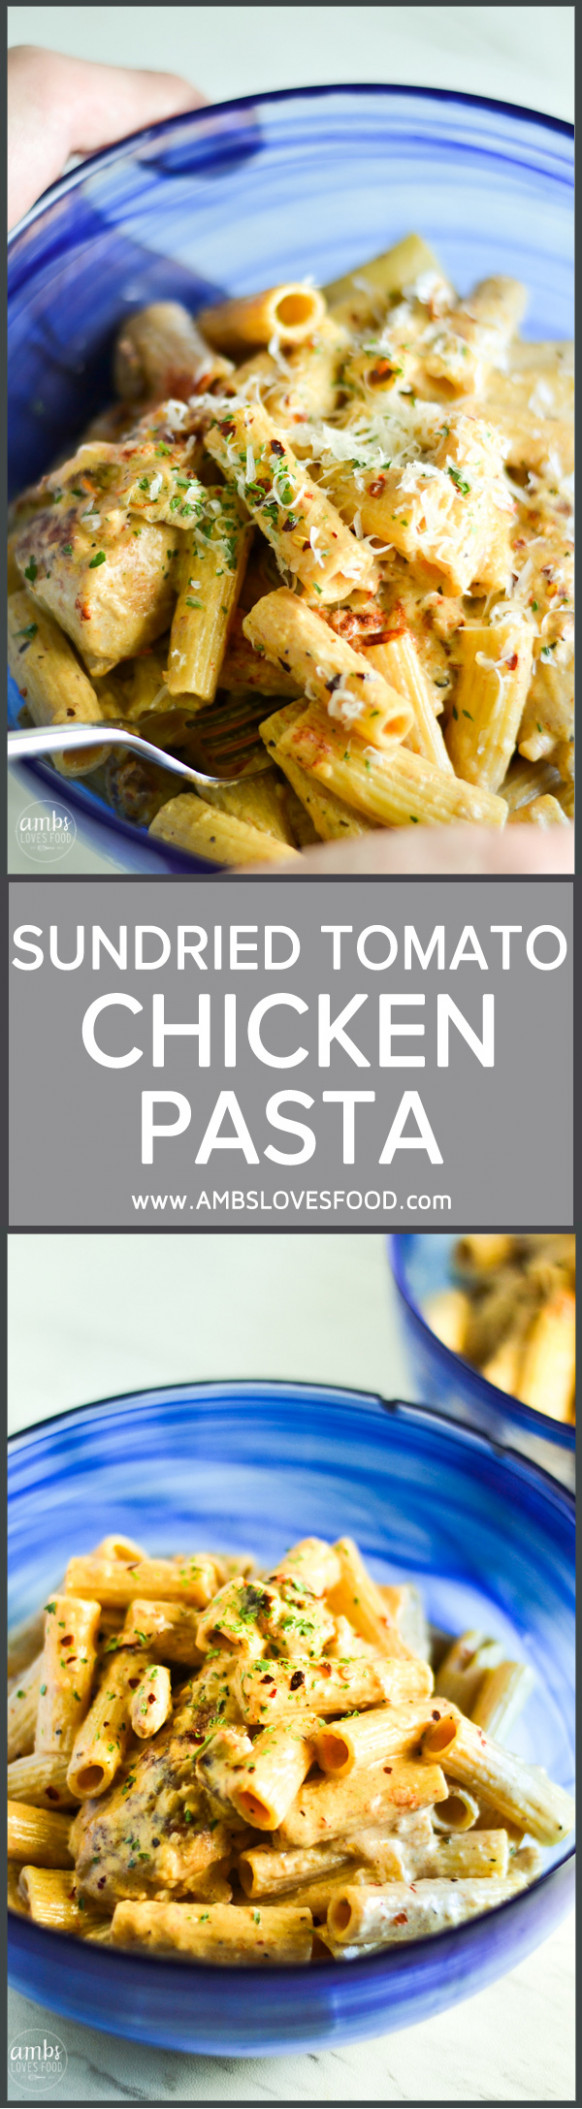 SUNDRIED TOMATO CHICKEN PASTA